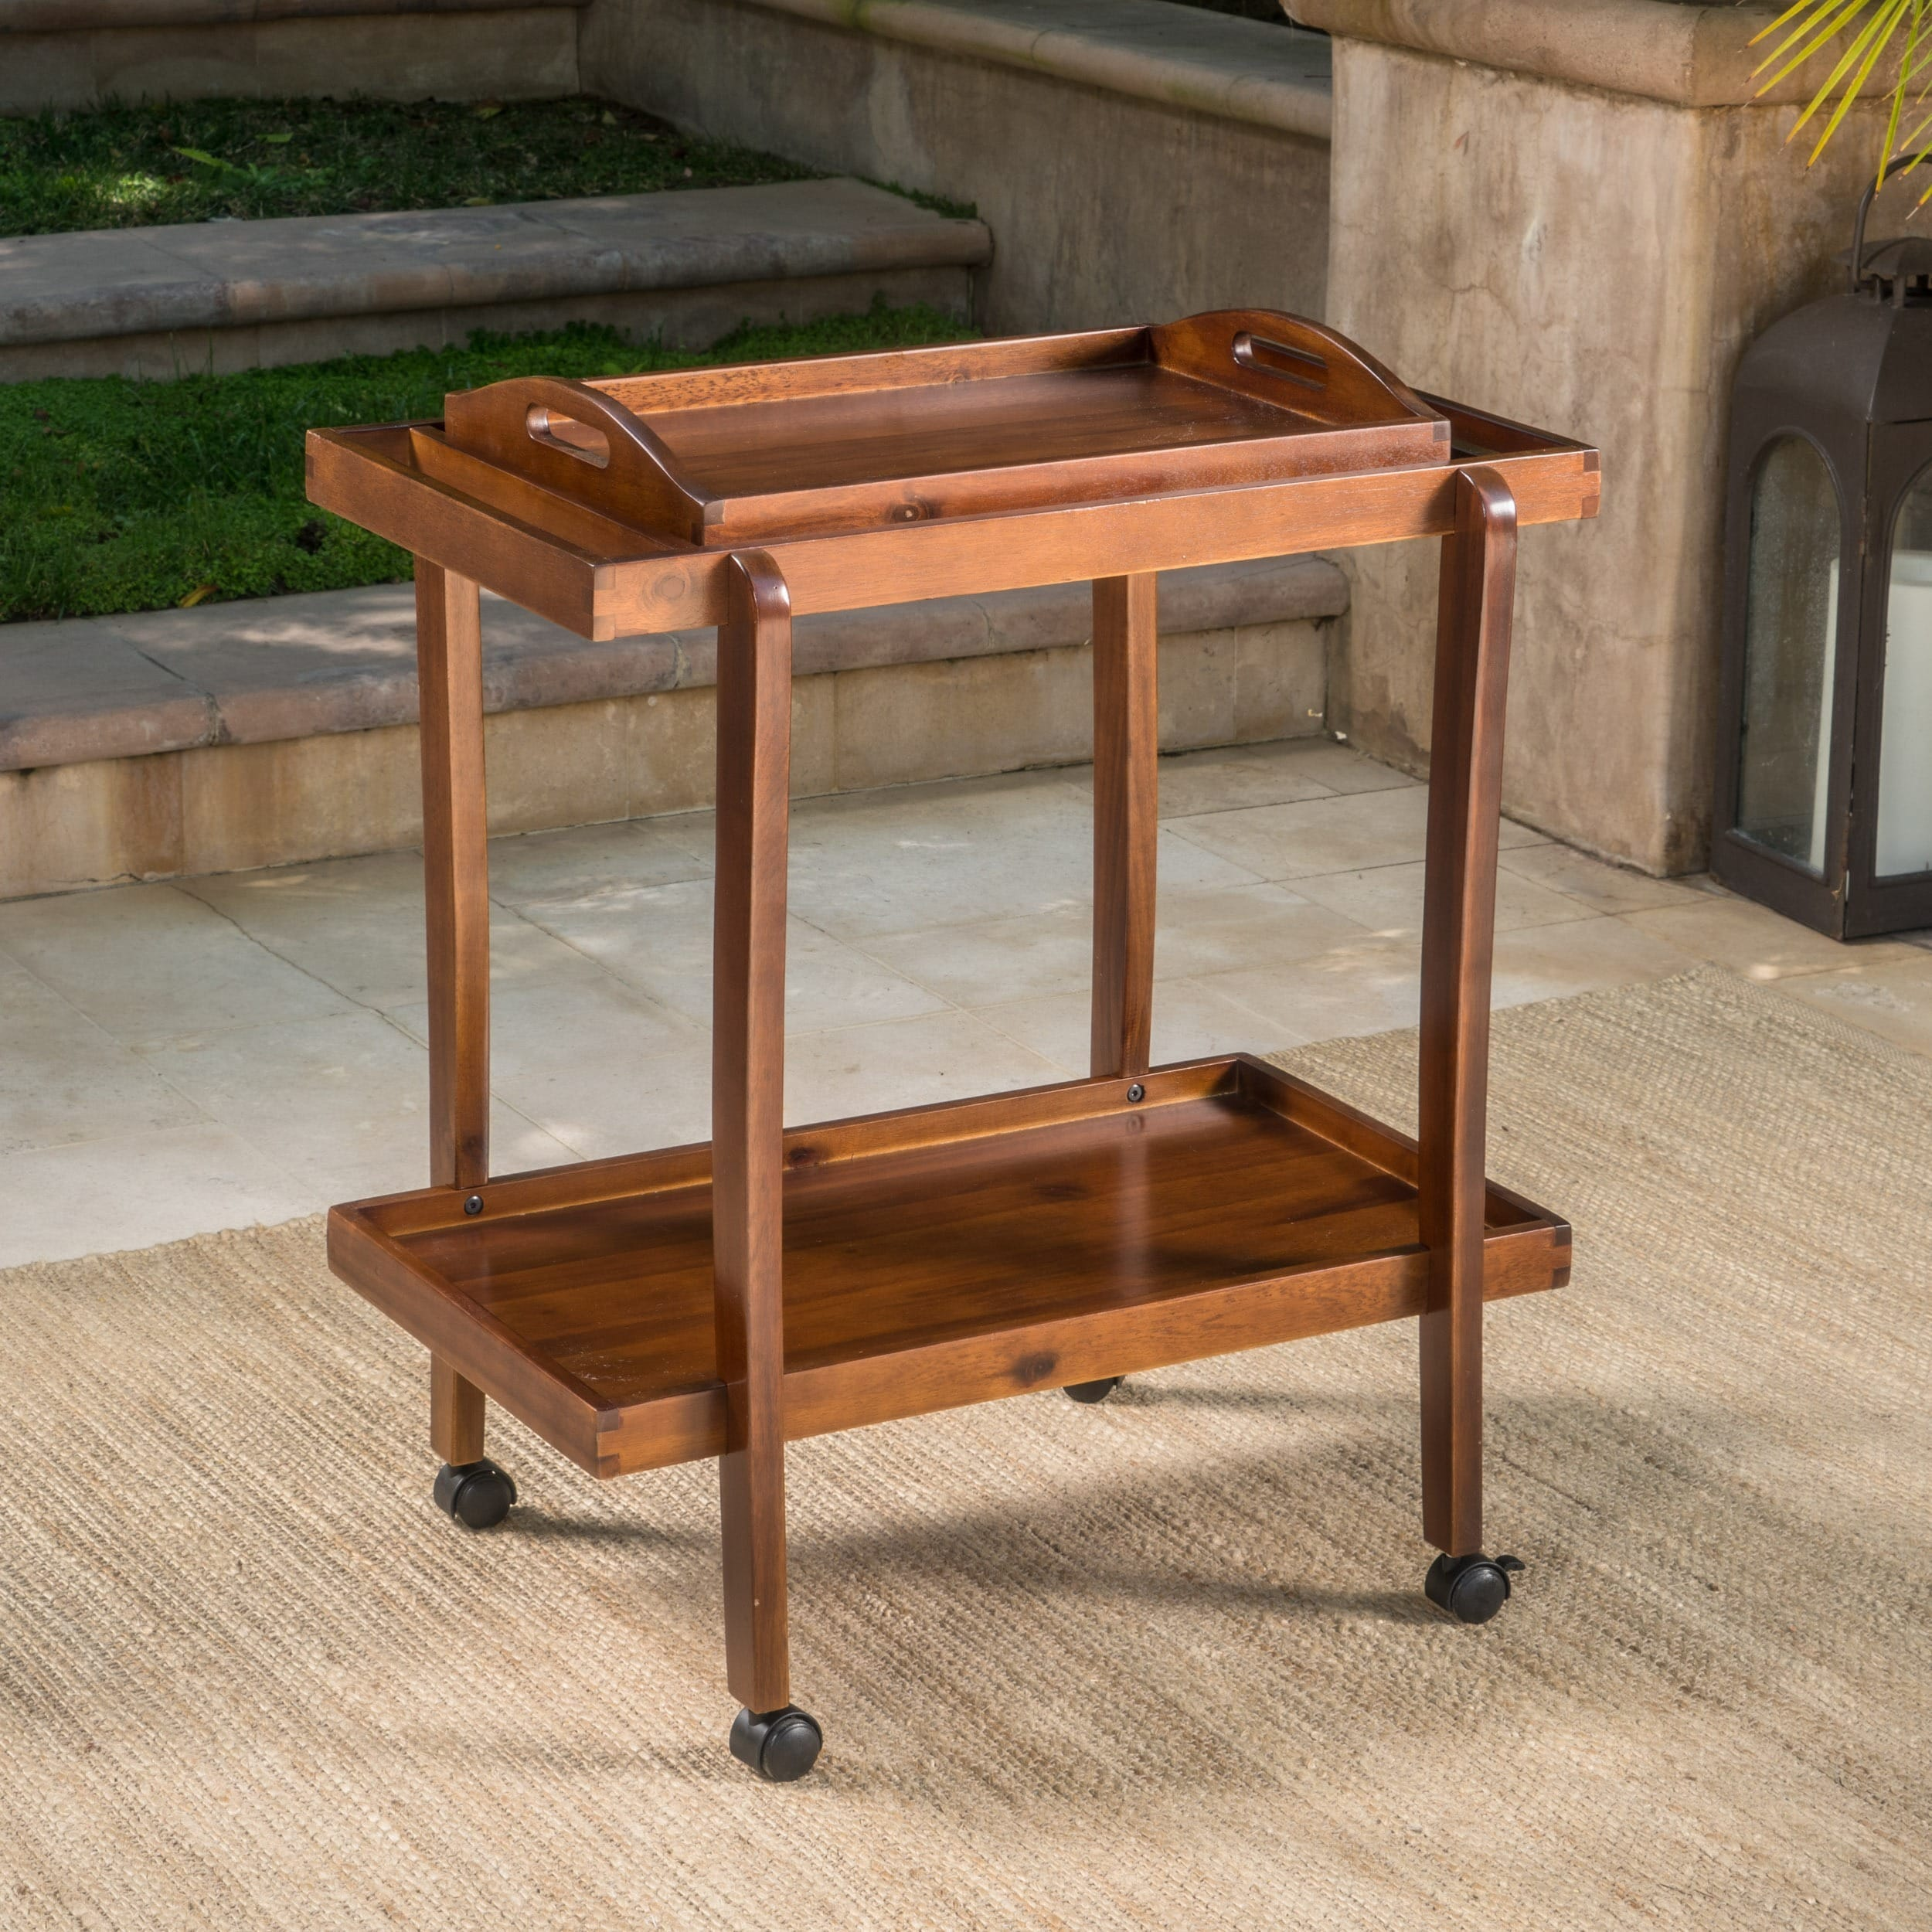 Christopher Knight Home Preslie Acacia Wood Bar Cart with Removable Tray by